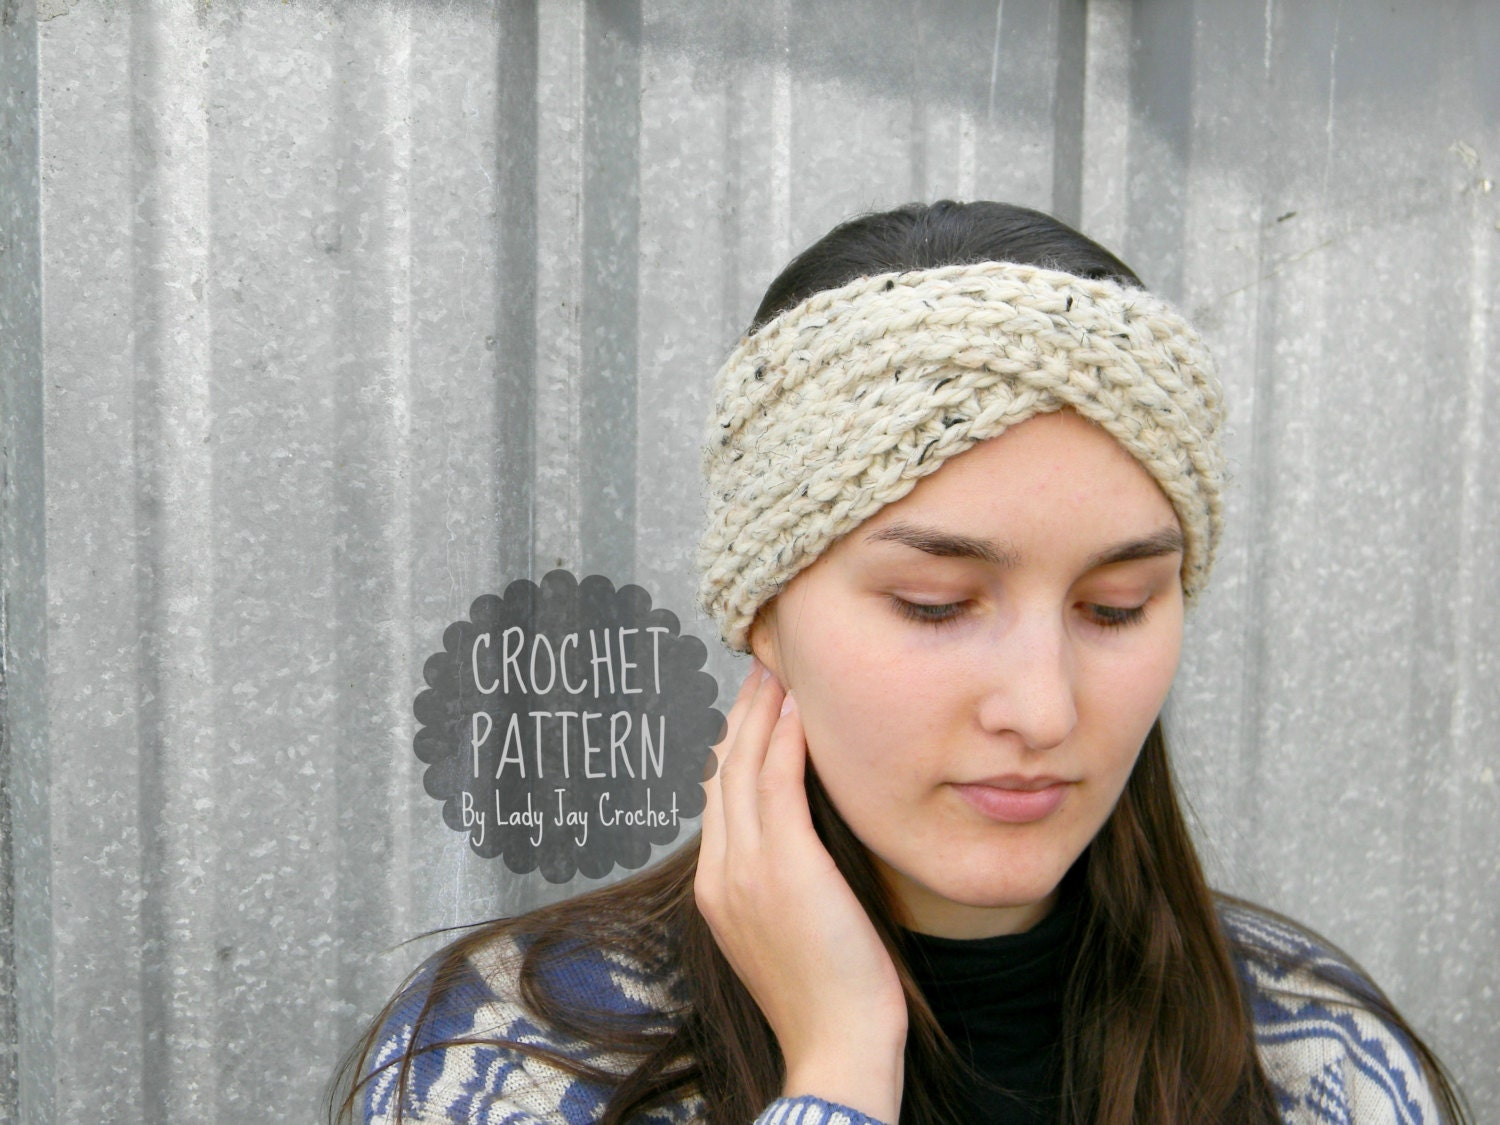 Pattern aurora earwarmer knit look turban headband chunky this is a digital file bankloansurffo Image collections